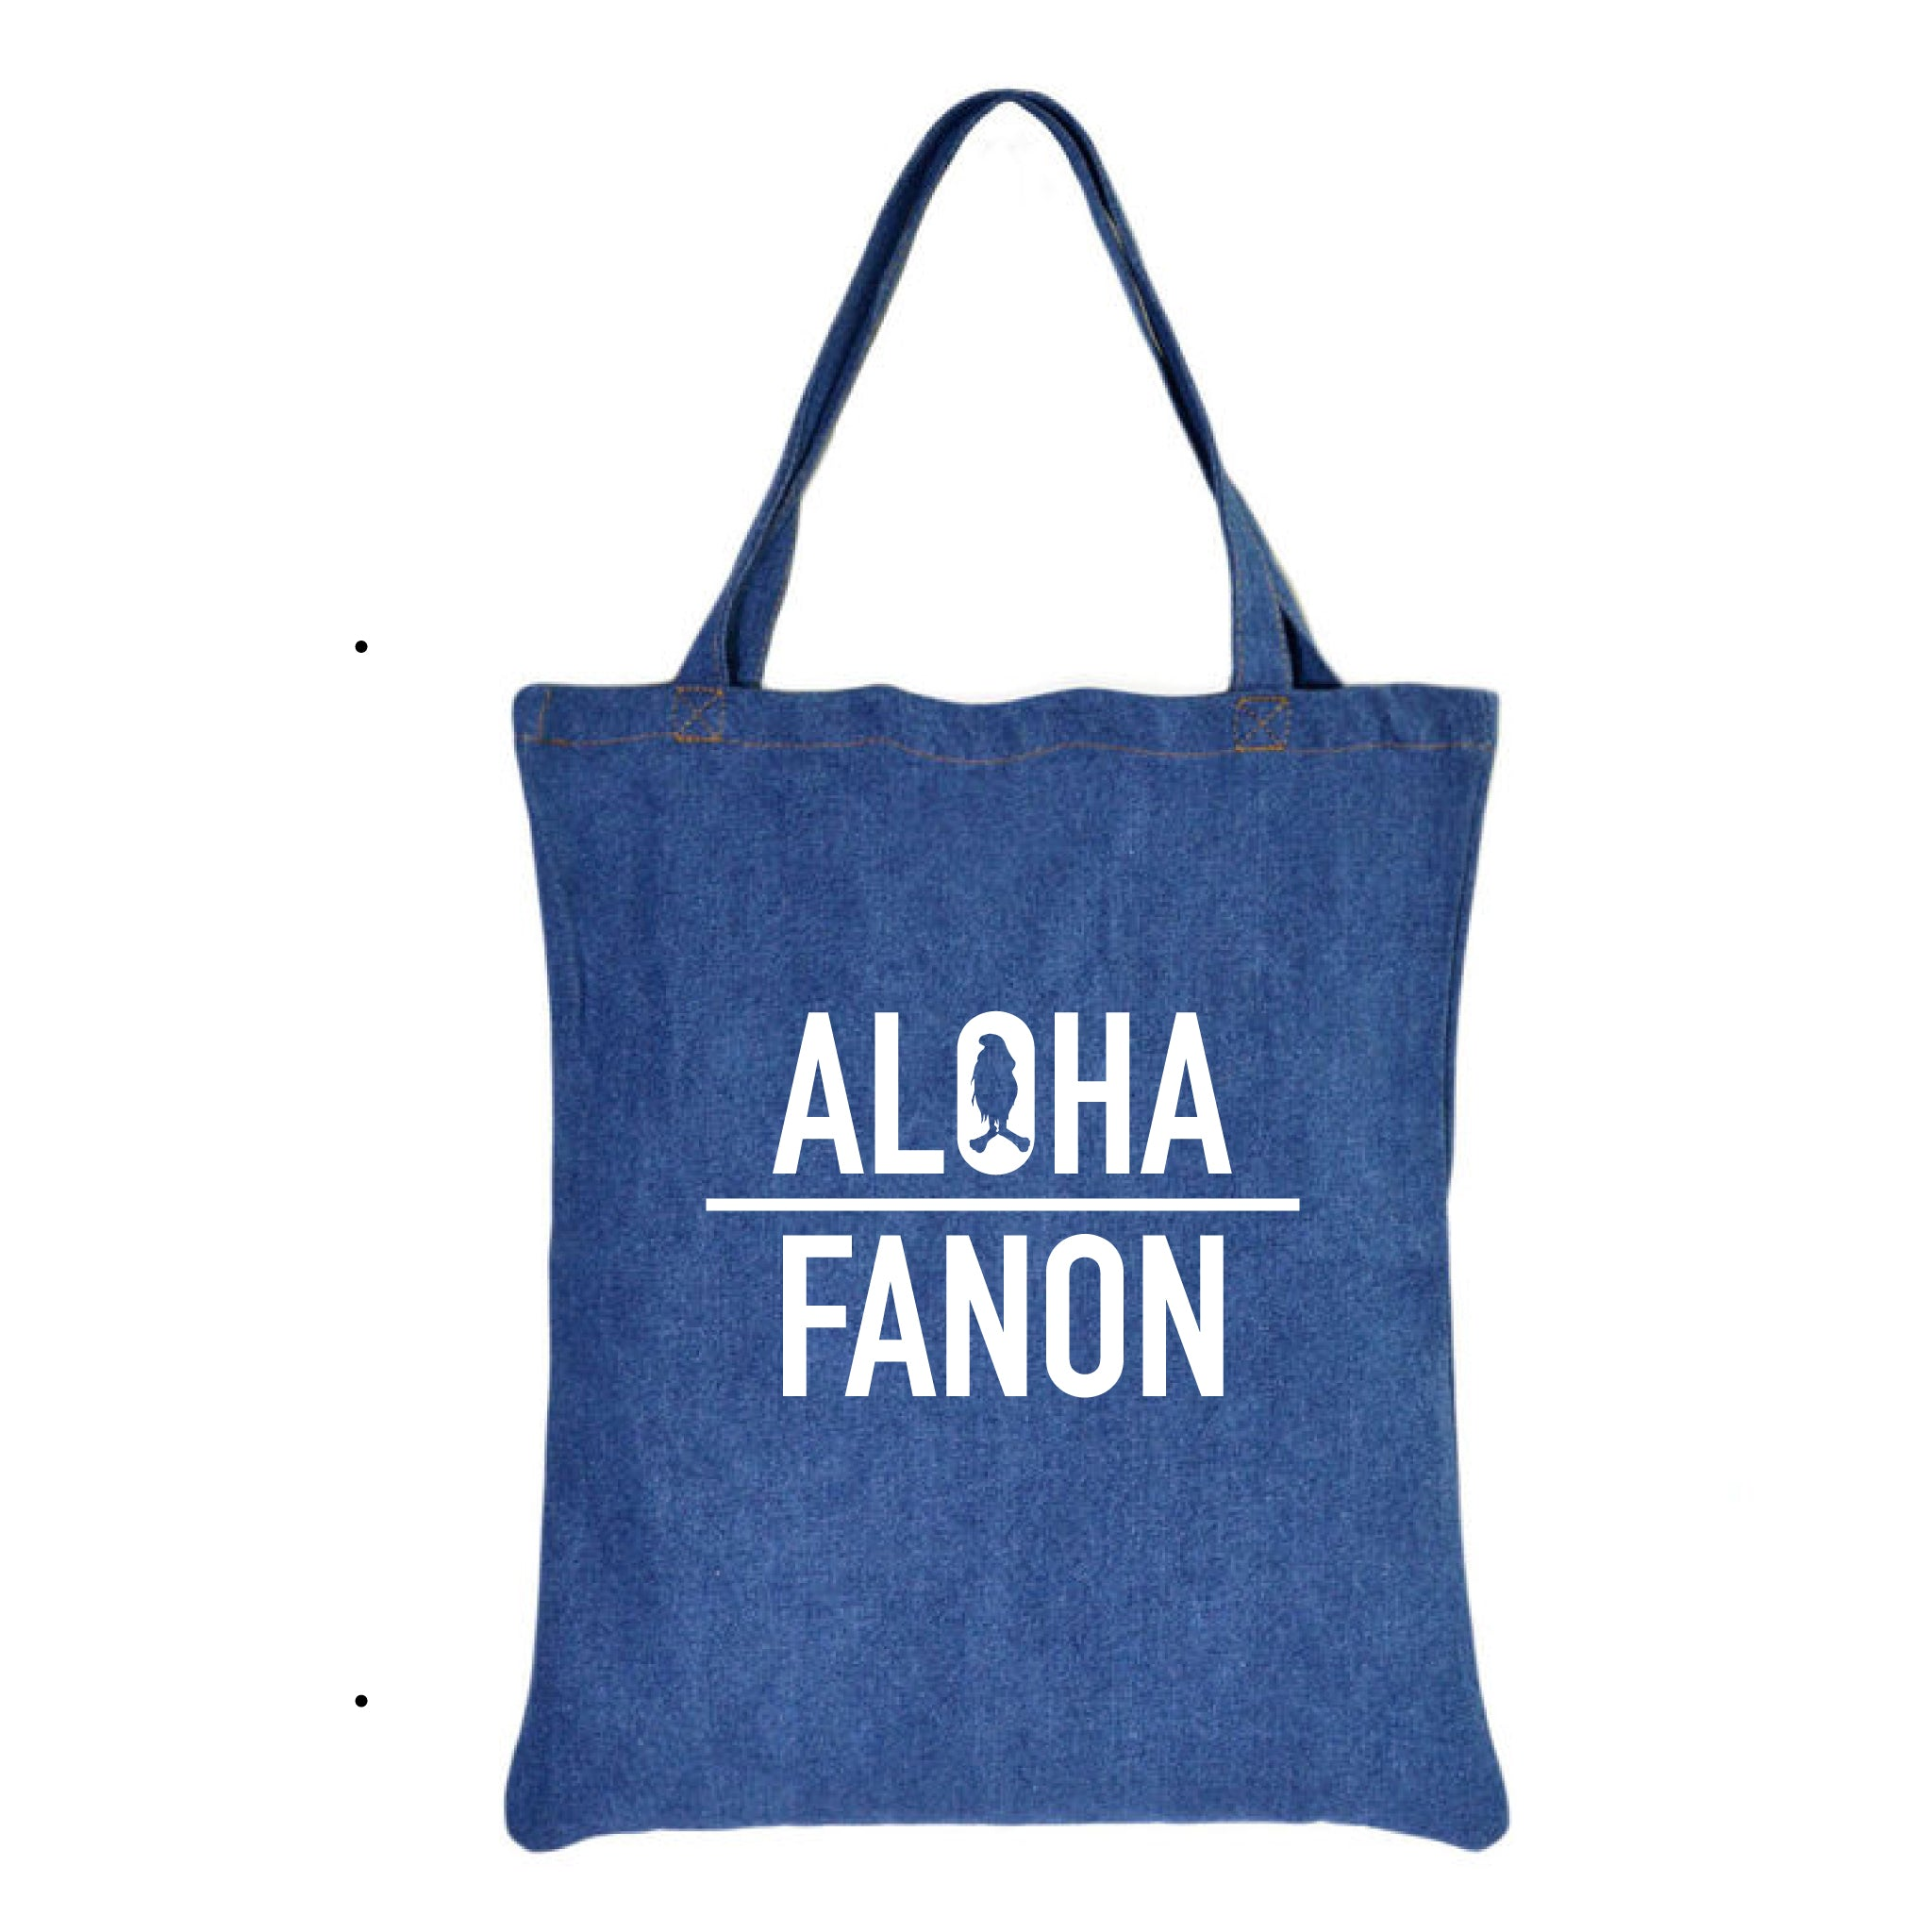 [BAG] DENIM ALOHA FANON TOTE BAG